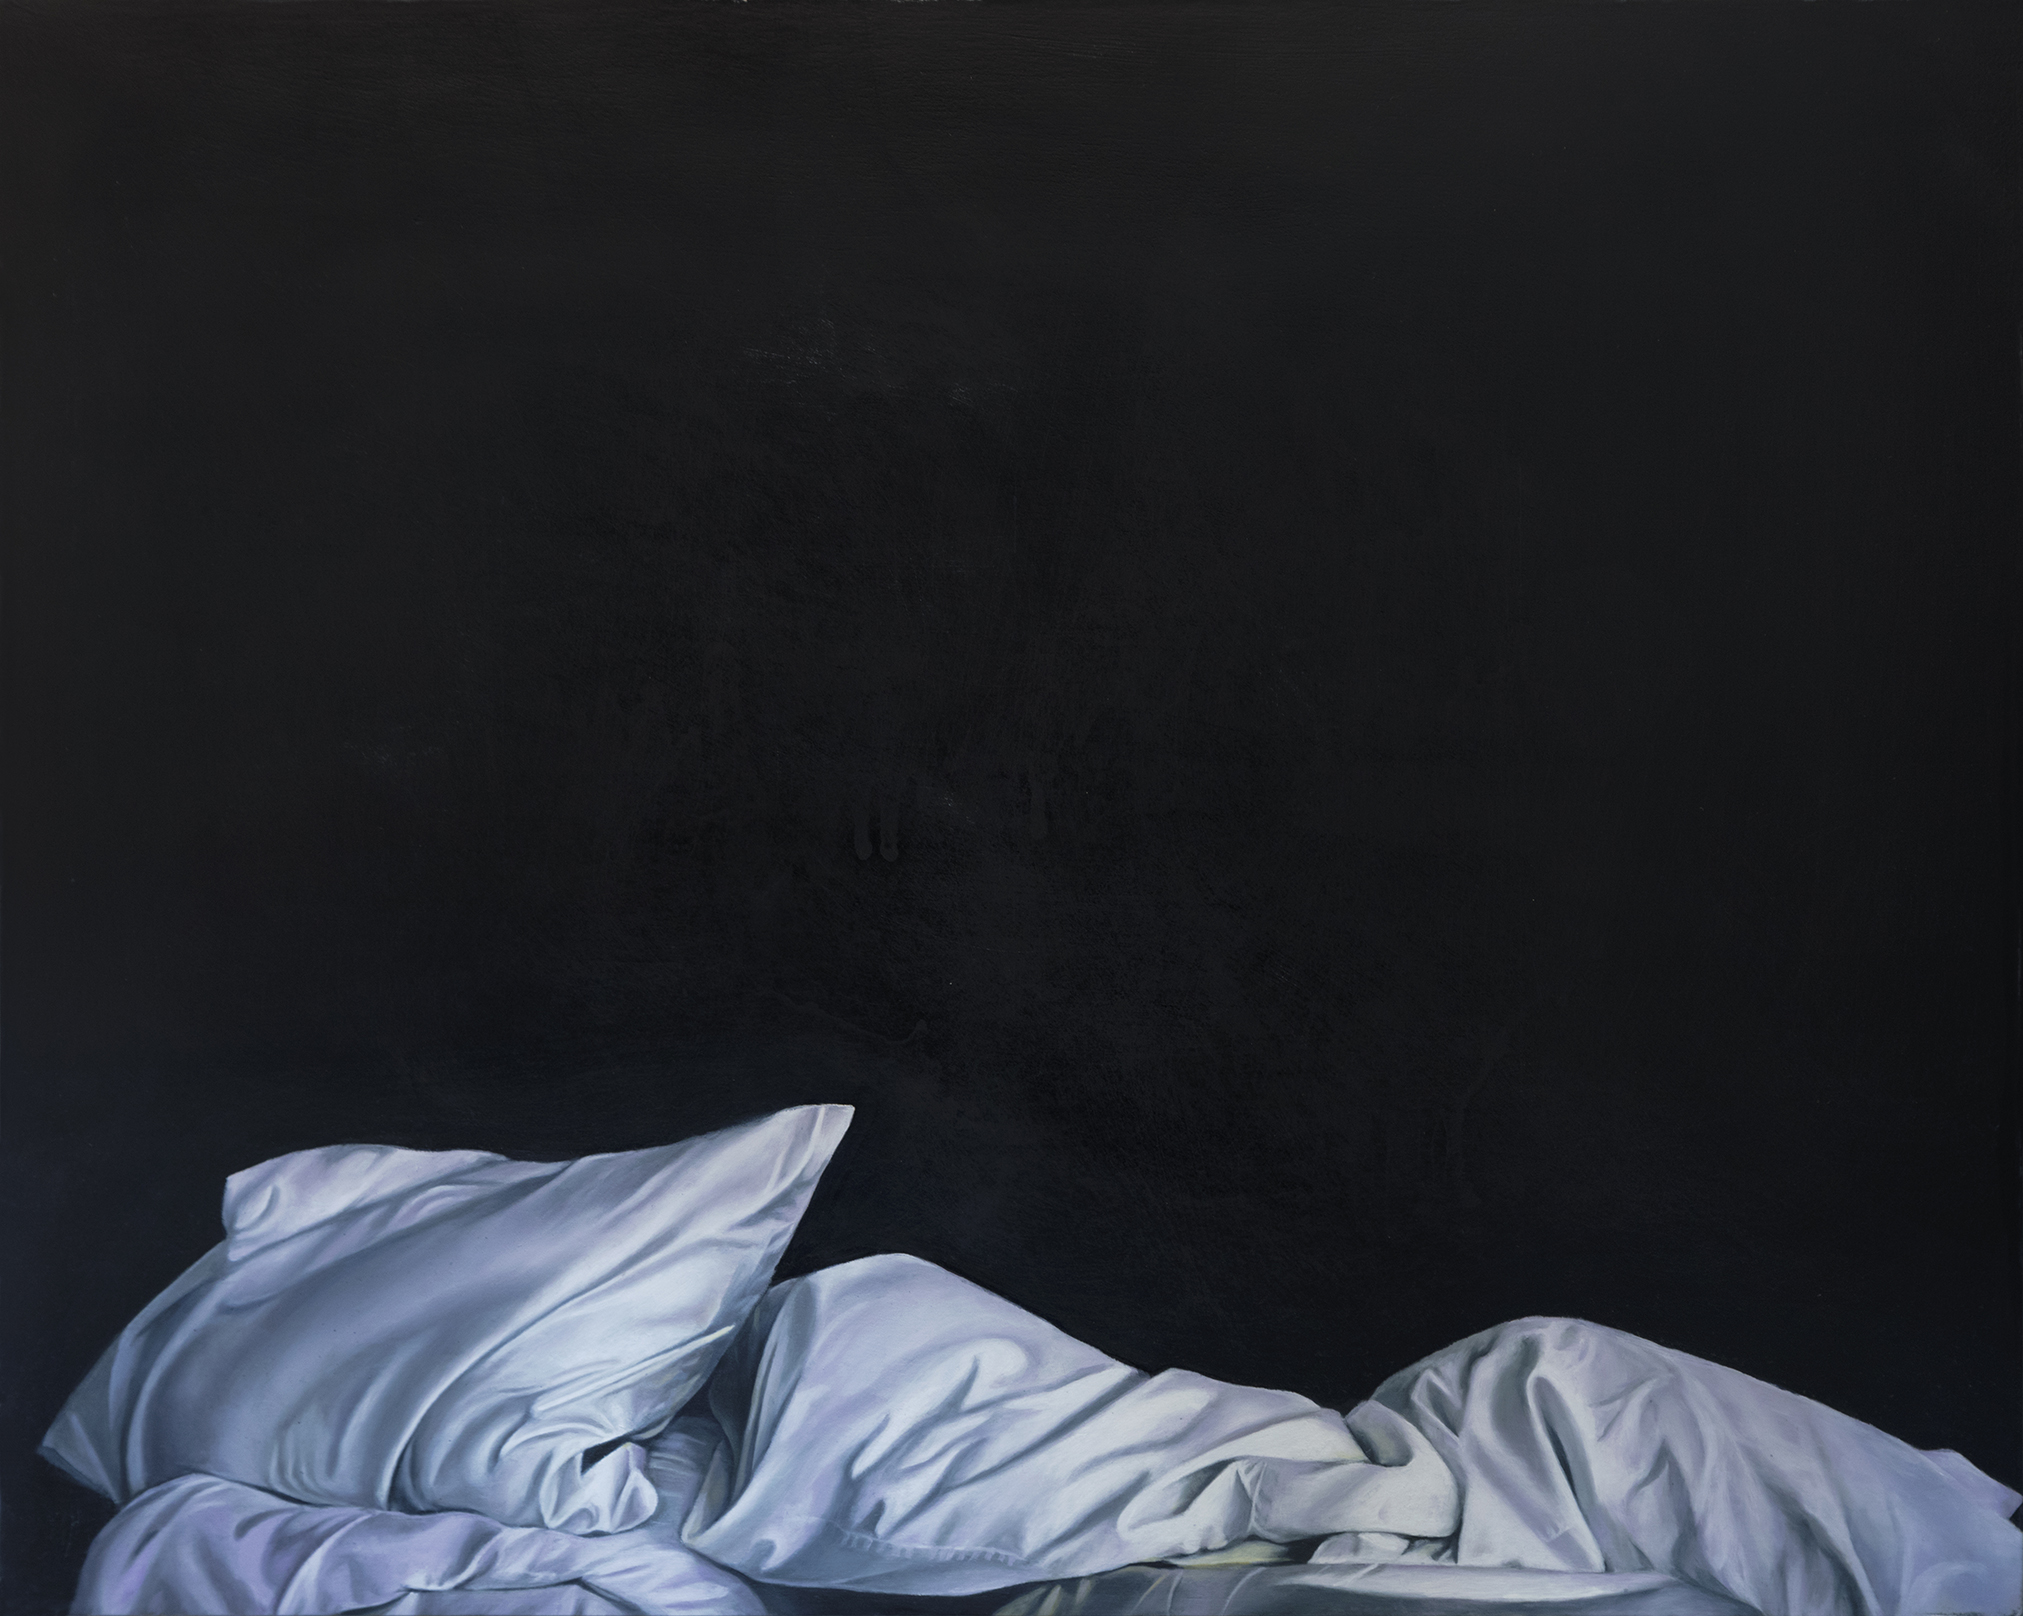 """I like the crispness of the imagery and Stephanie's painterly choices in her application of pigment. The unmade beds theme is universally approachable yet so open to interpretation. The work demands self reflection and empathy. I am attracted to the sensual movements of the lines, yet feel a simultaneous sad calmness."" - Stephanie Serpick, Marloe Gallery"